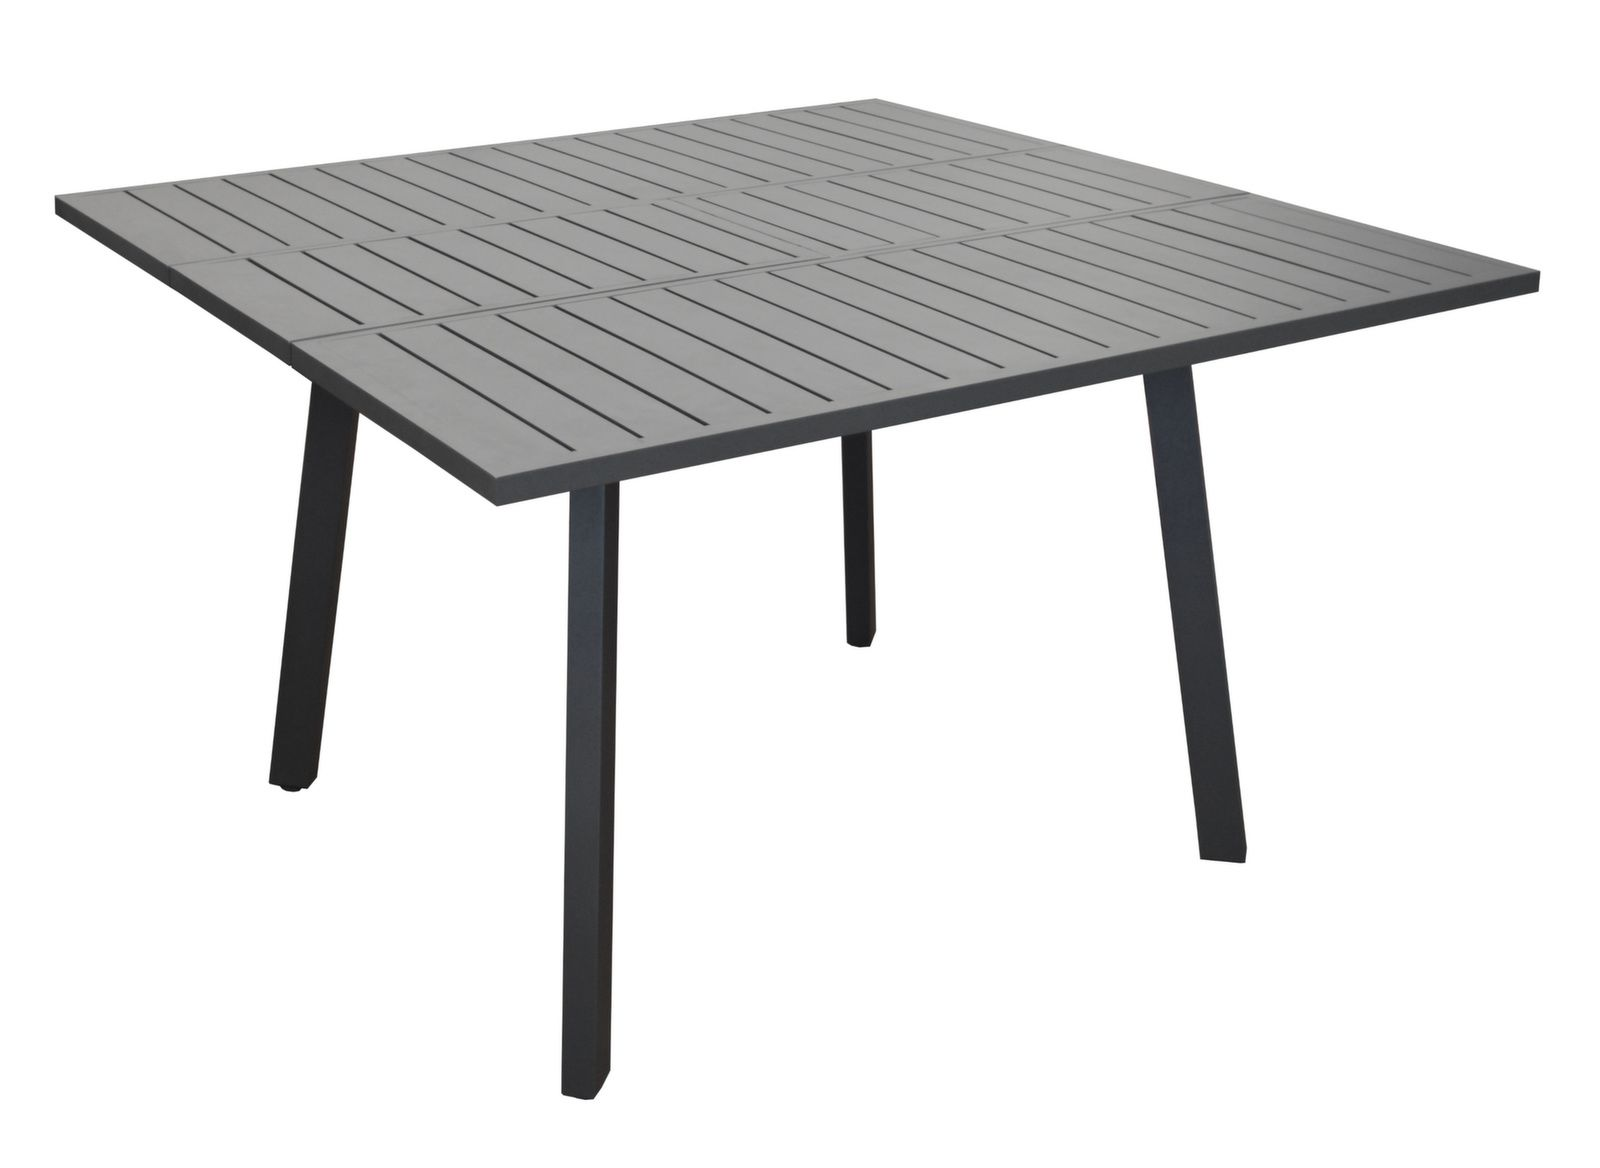 table barcelona 100 145x145 cm